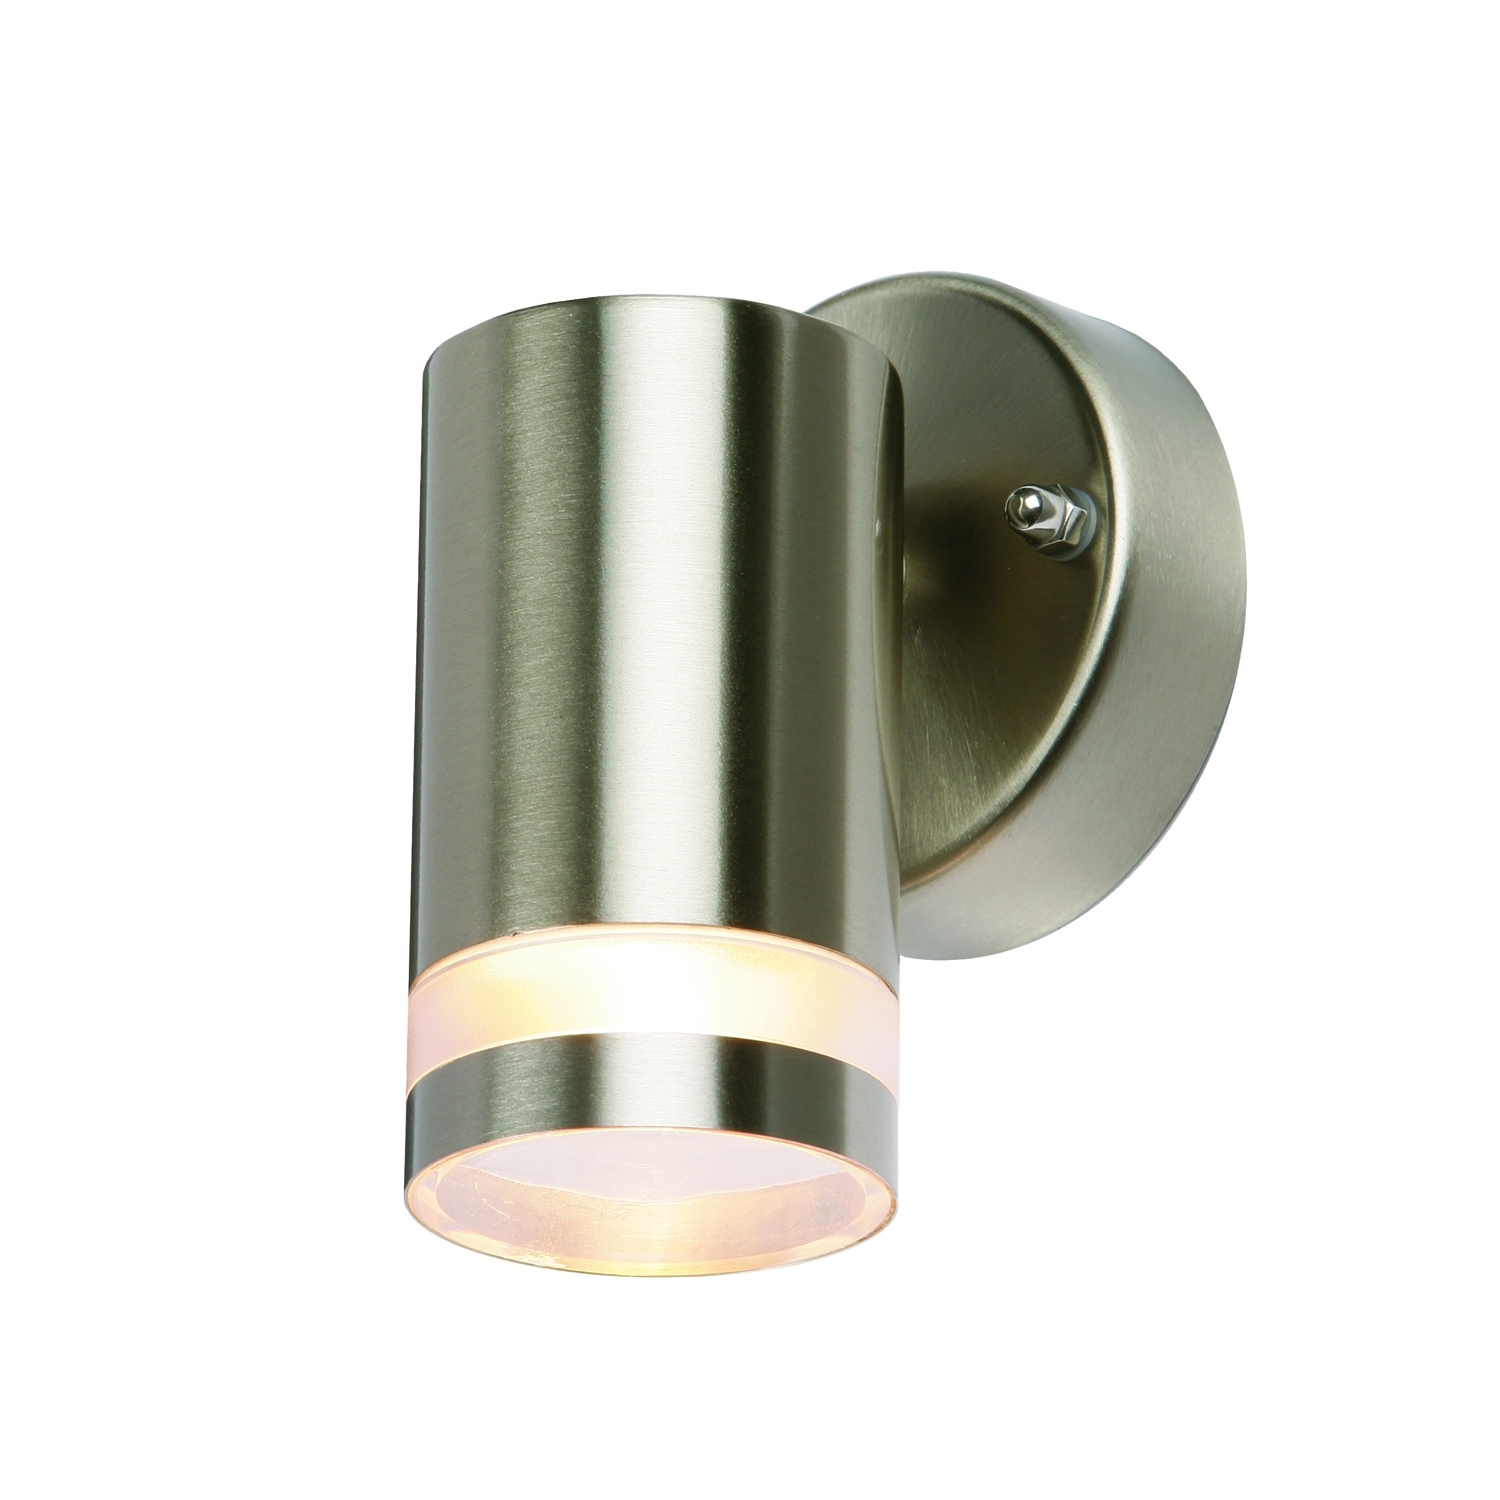 Latest Led Outdoor Wall Lights With Photocell Within Outdoor Lights With Photocell (View 4 of 20)